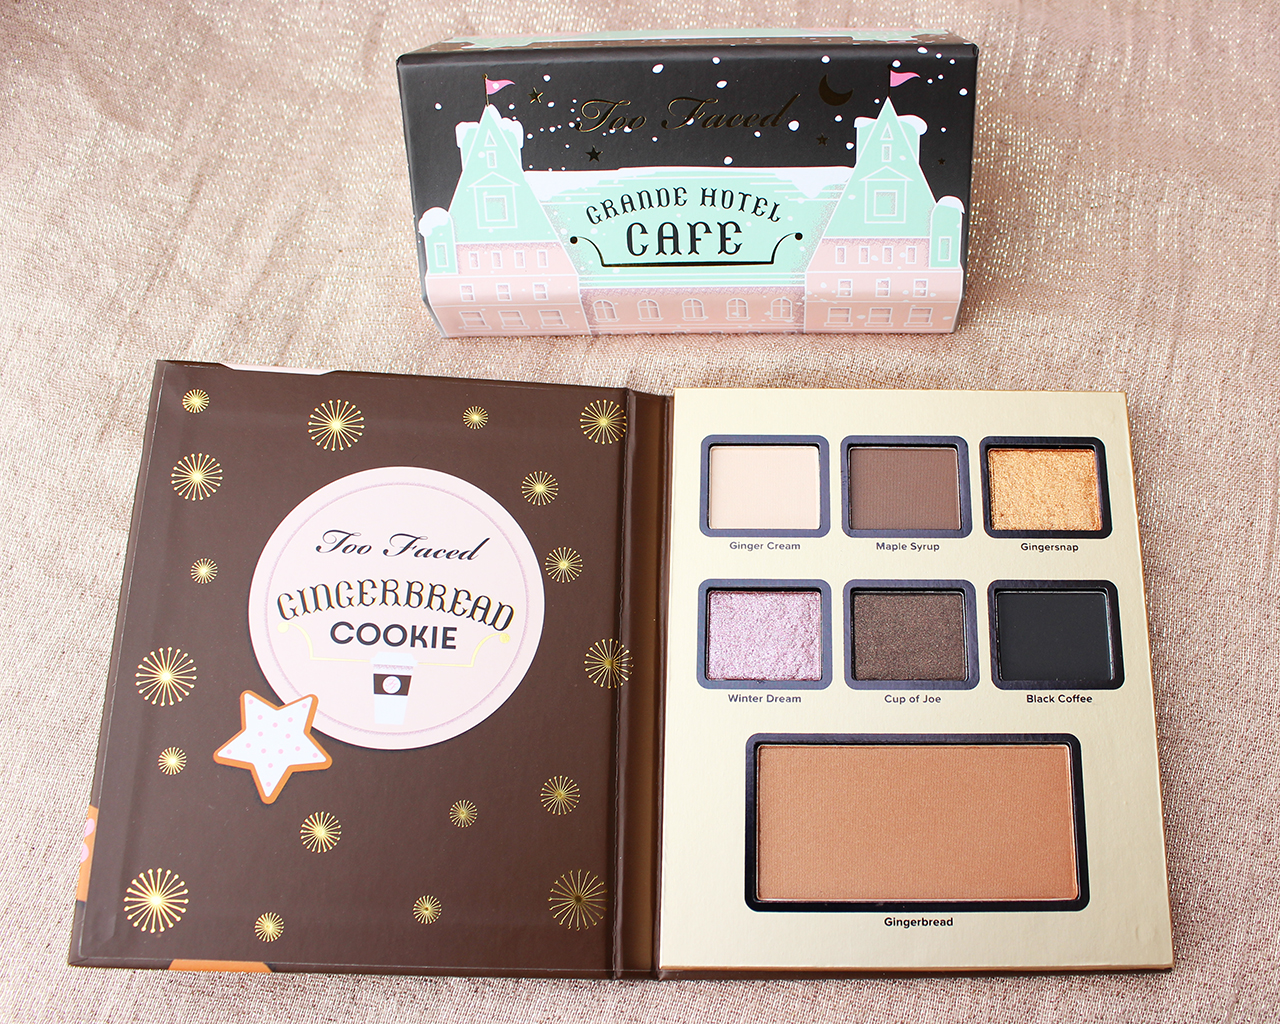 Too Faced Grande Hotel Cafe palette Gingerbread